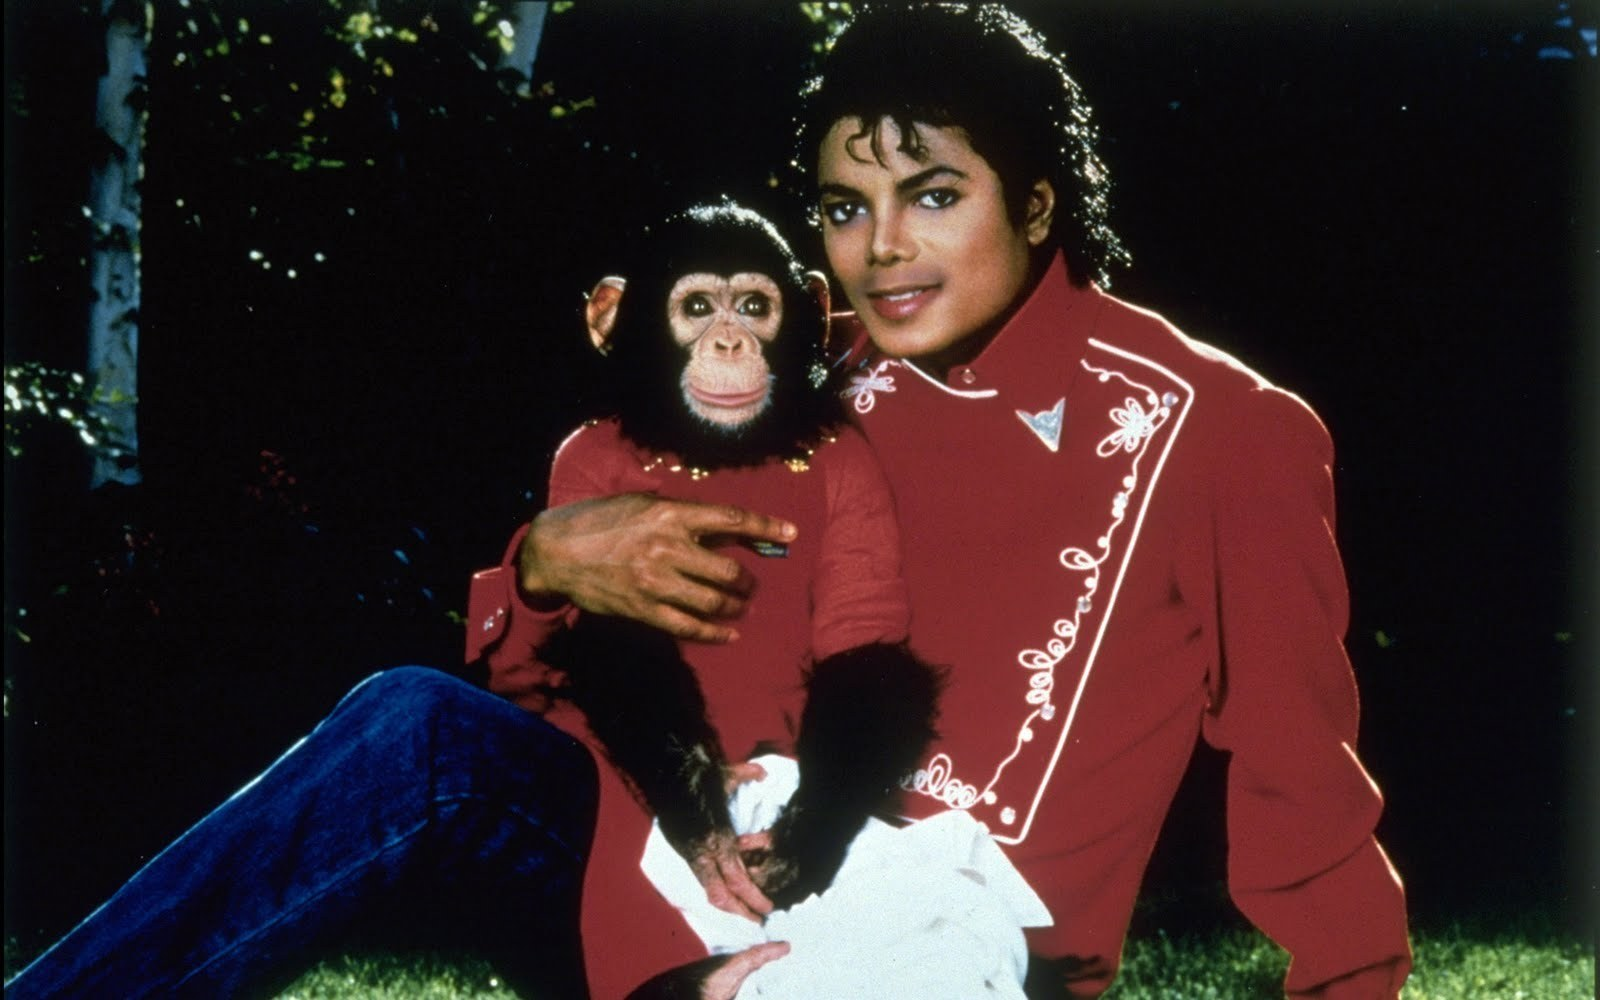 -SWEET-MICHAEL-CUTE-BUBBLE-michael-jackson-12358799-1600-1000.jpg